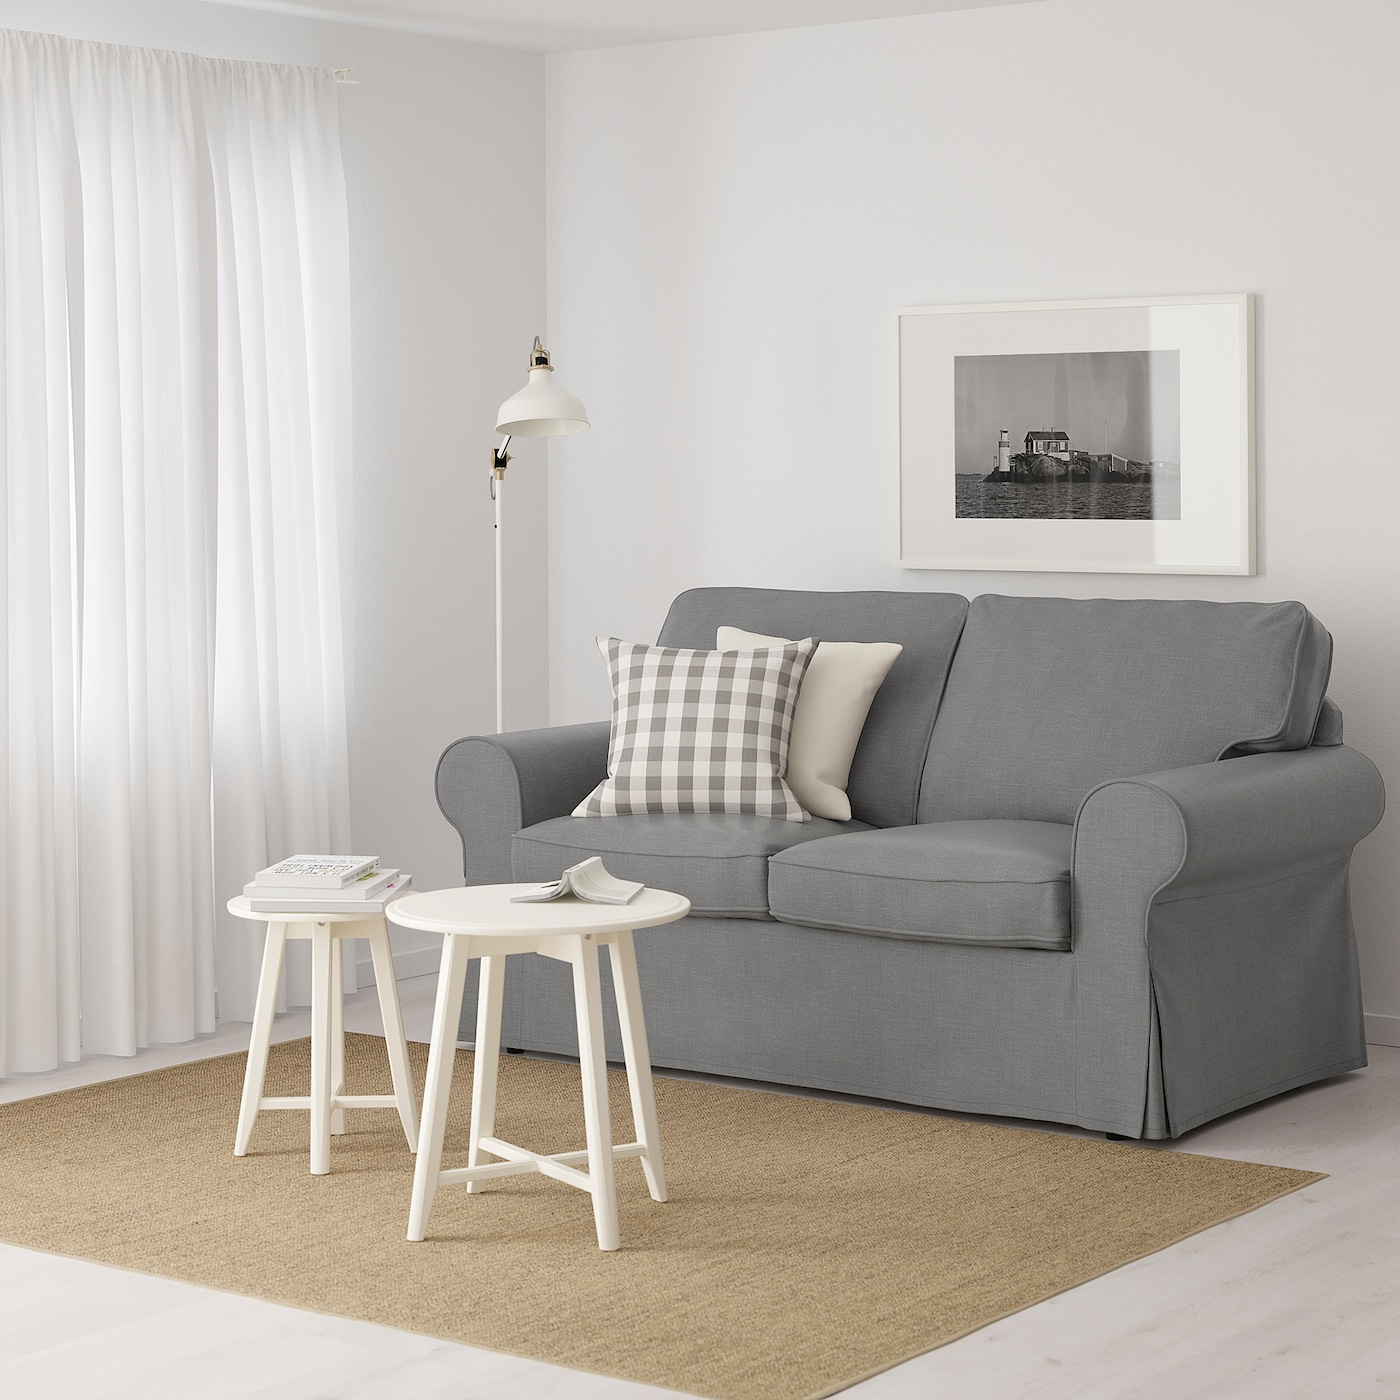 Full Size of Ektorp Sofa Cover Uk Bed 3 Seat Ikea Review Ebay White Dimensions With Chaise Assembly Canada Karlstad 2018 Length Slipcover Corner Instructions 2er Nordvalla Sofa Ektorp Sofa